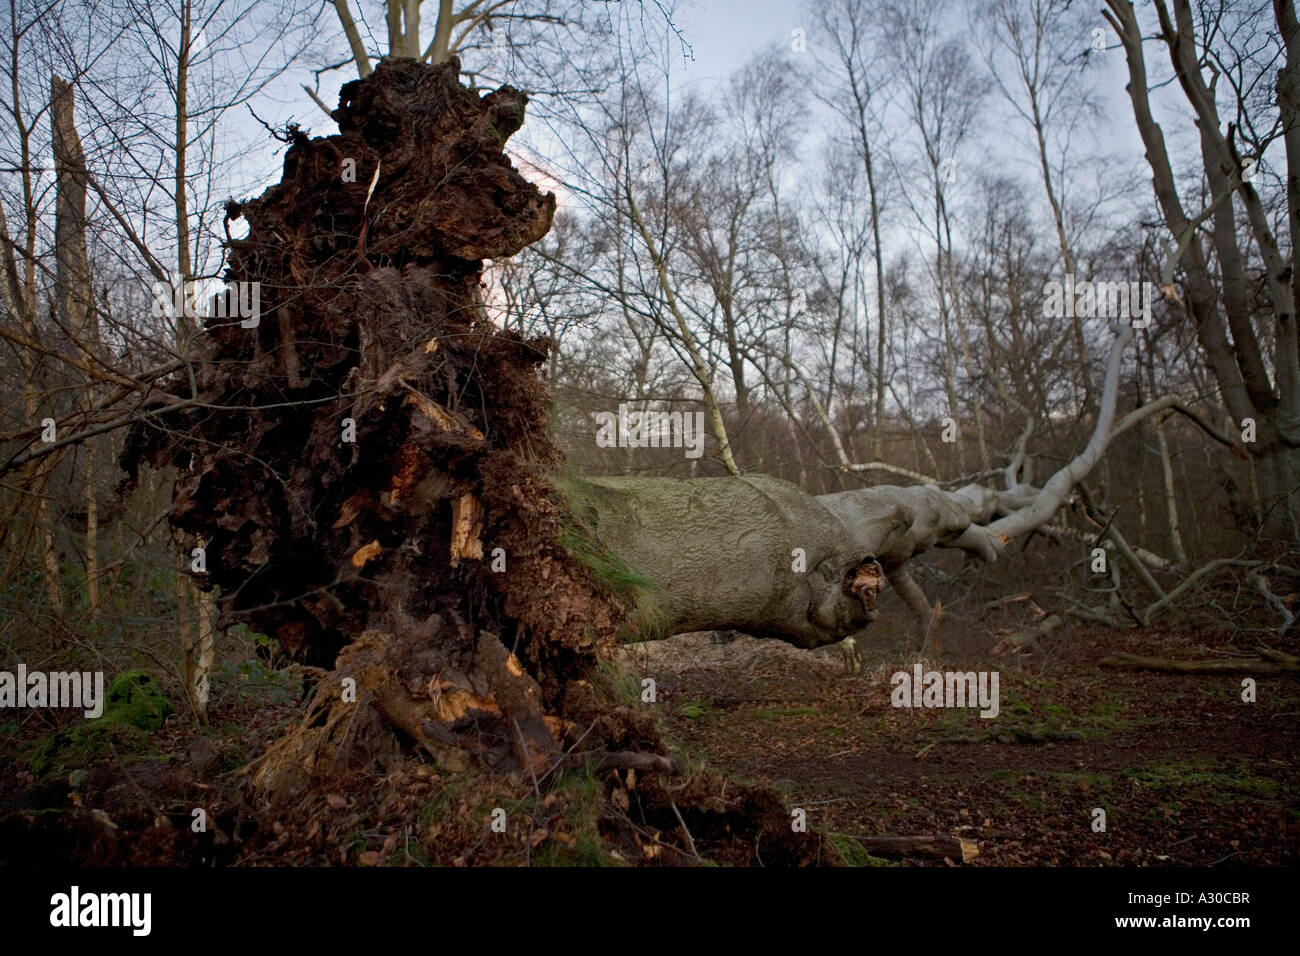 Uprooted tree following severe storm in Epping Forest - Stock Image